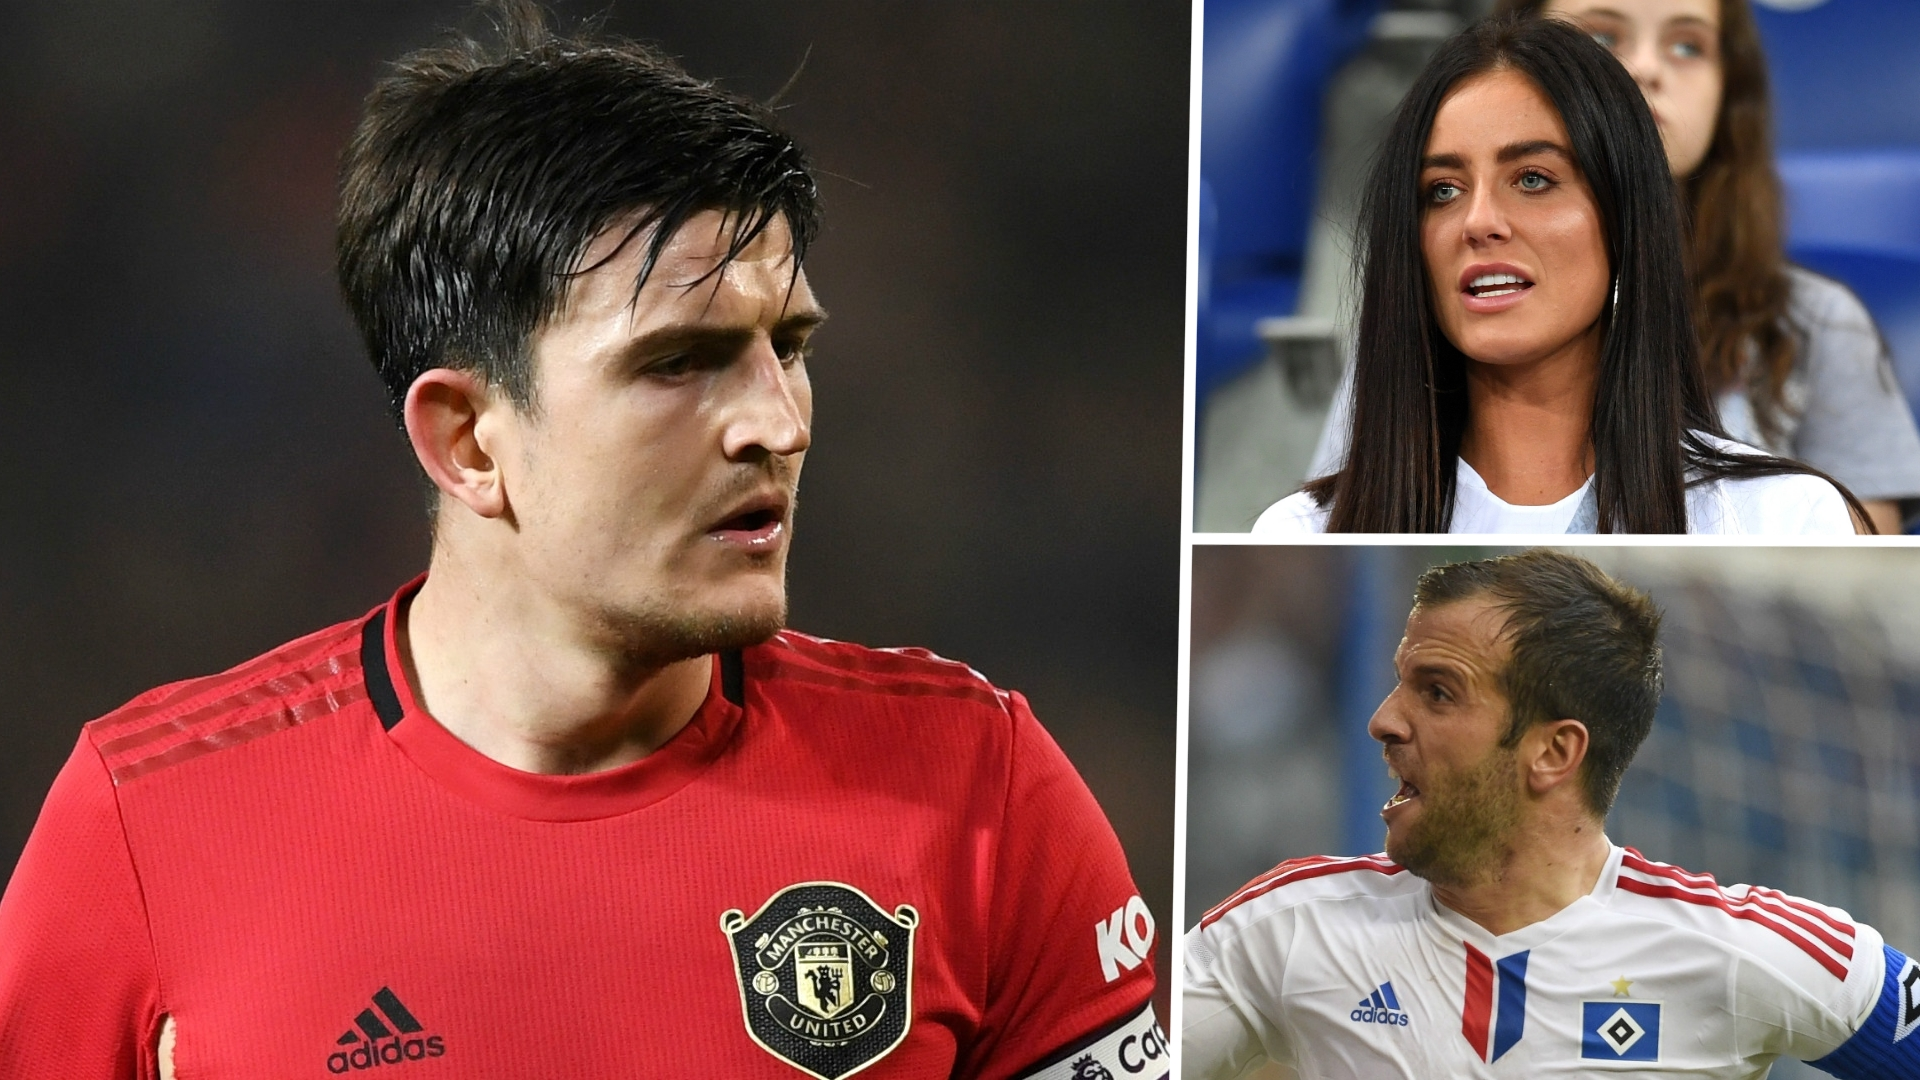 maguire goes home tells his wife he screws up but still earns so much van der vaart in astonishing dig at man utd star goal com maguire goes home tells his wife he